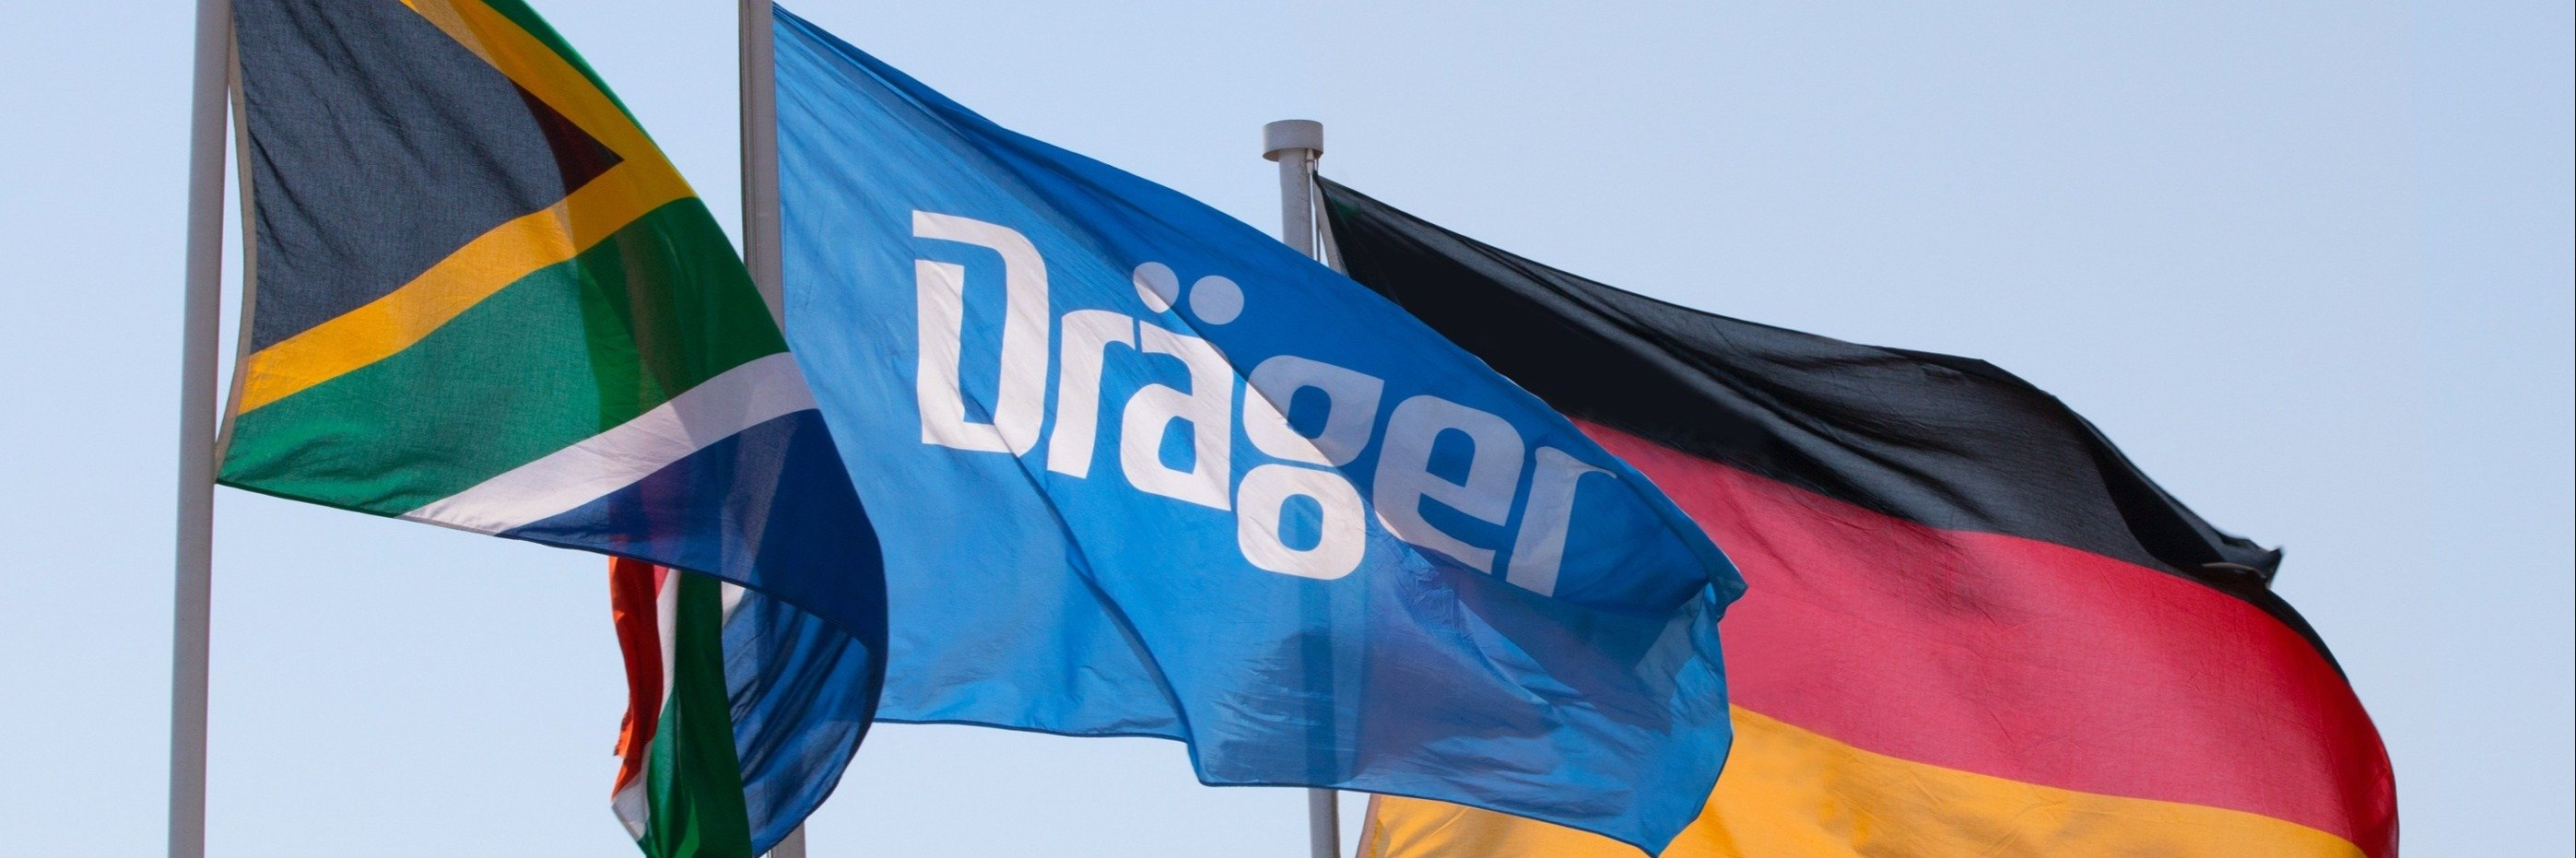 Drager flags-1-1-1